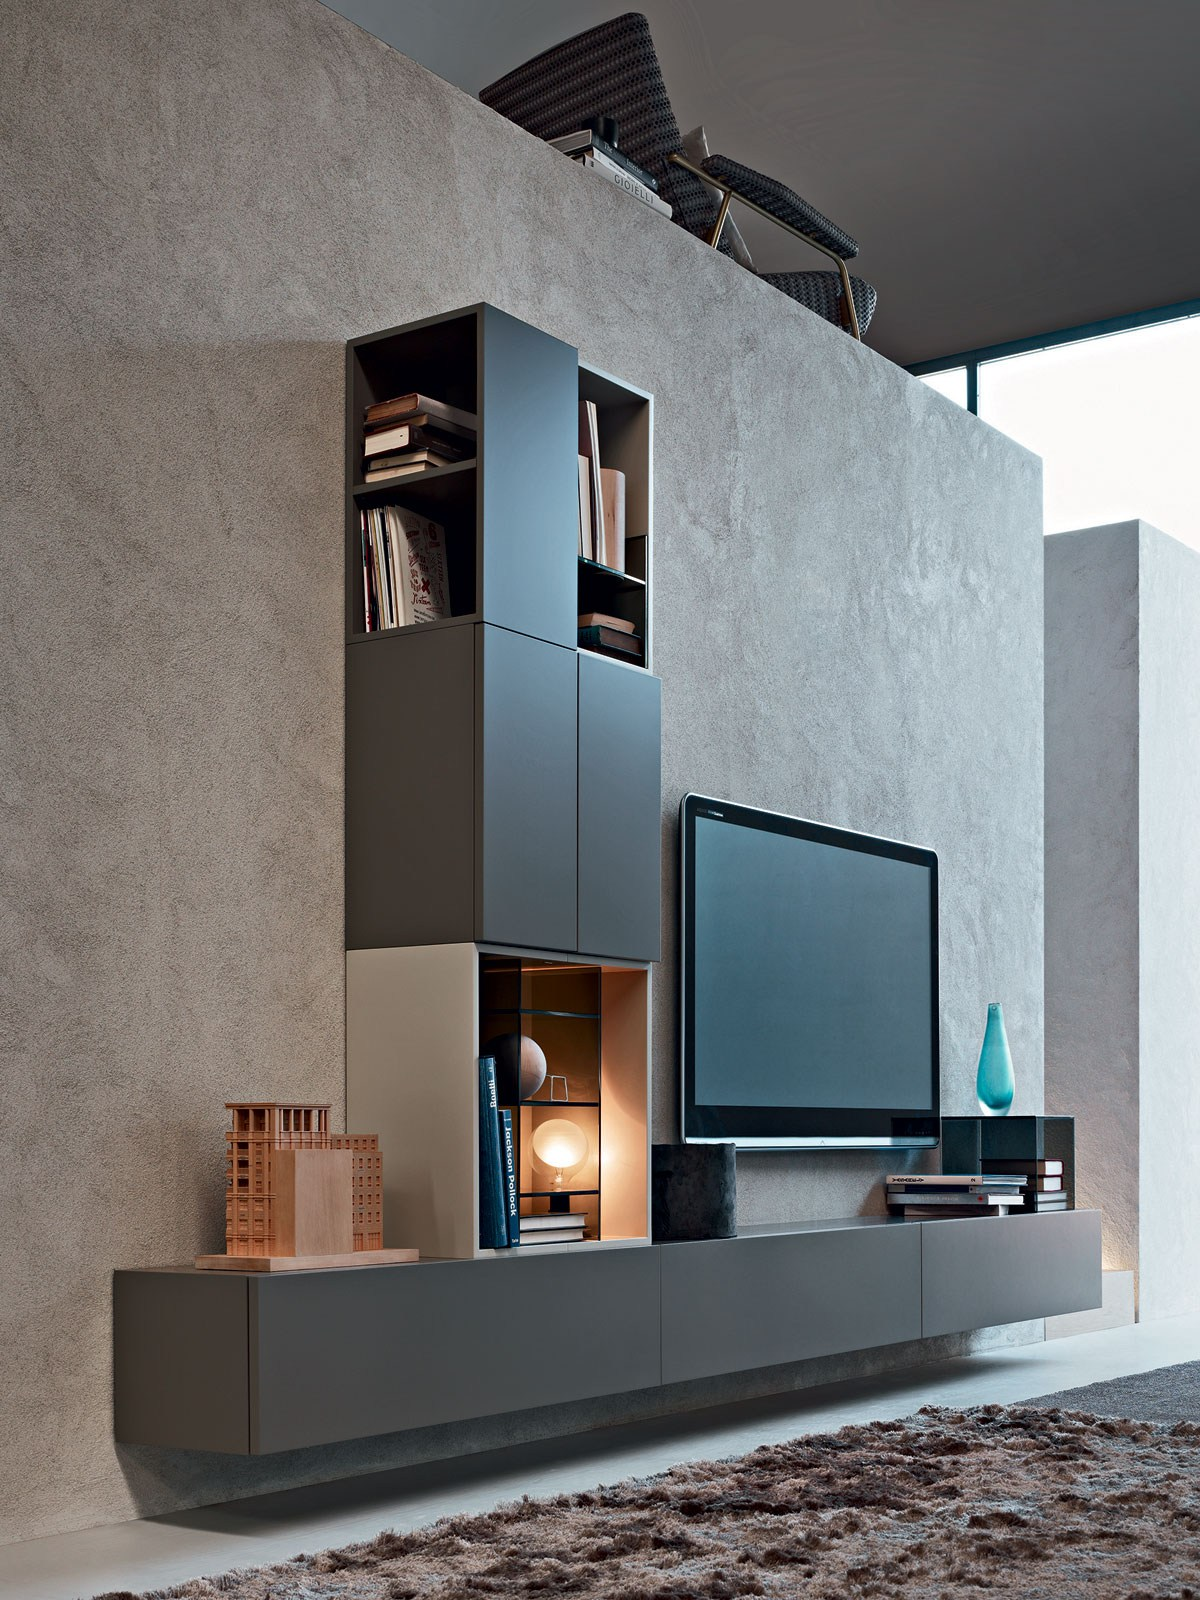 Fortepiano Sectional Storage Wall By Molteni Amp C